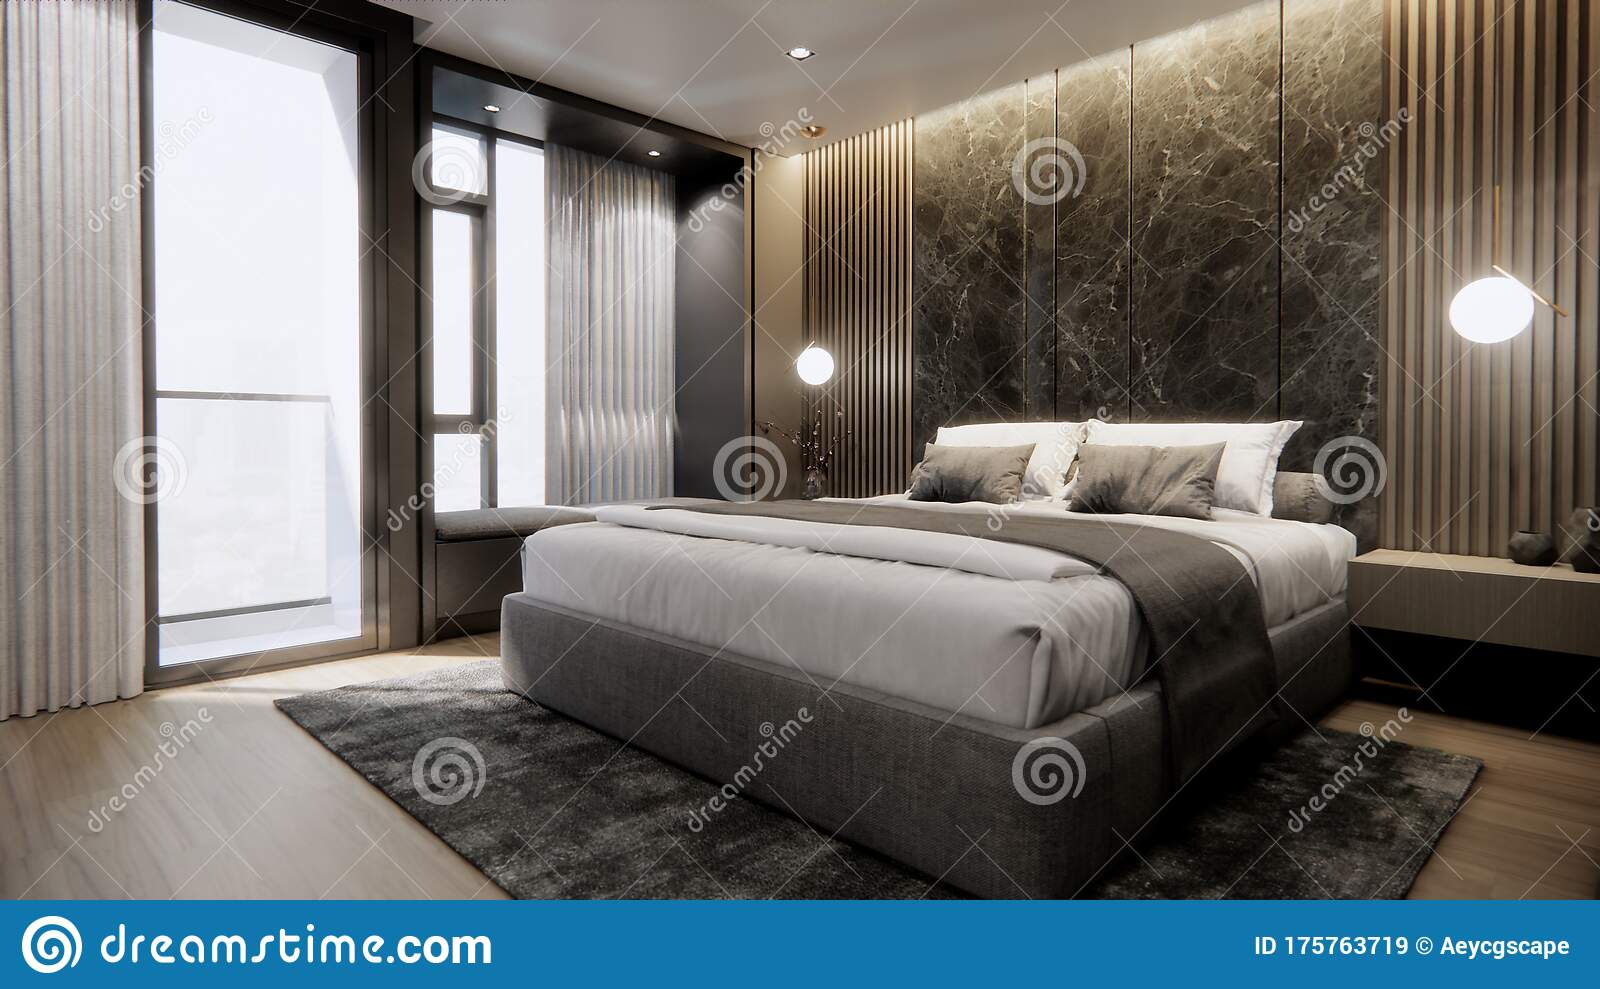 Interior Of Modern Luxury Bedroom With Double Bed And Marble Wall 3d Rendering Stock Illustration Illustration Of Interior Bedroom 175763719